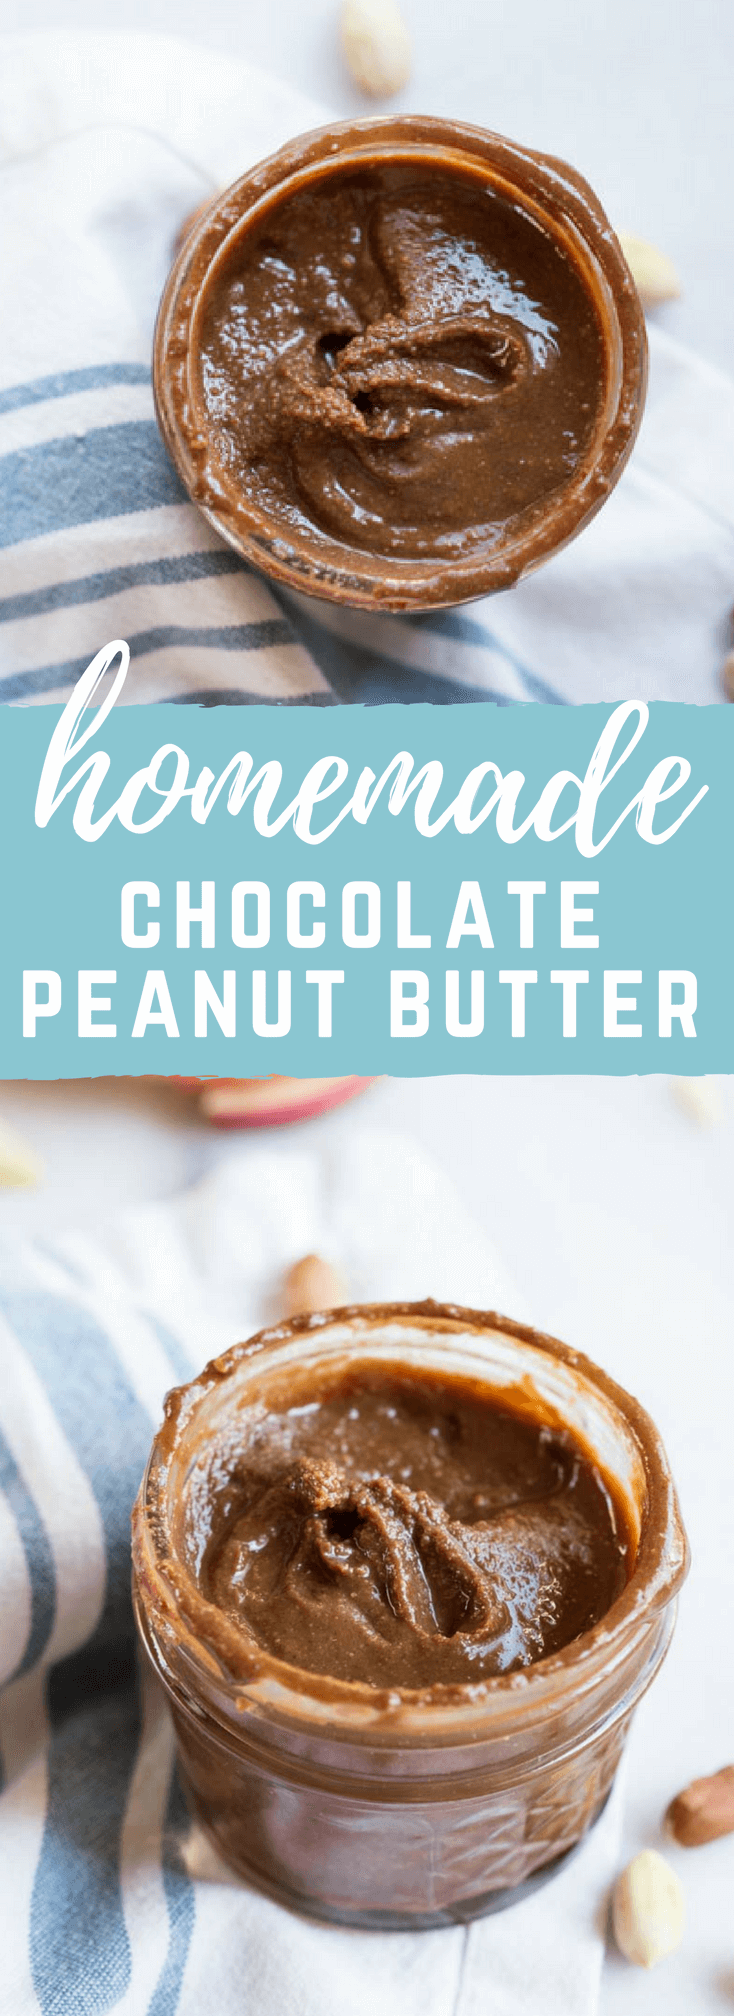 Homemade Chocolate Peanut Butter - how to make homemade nut butter